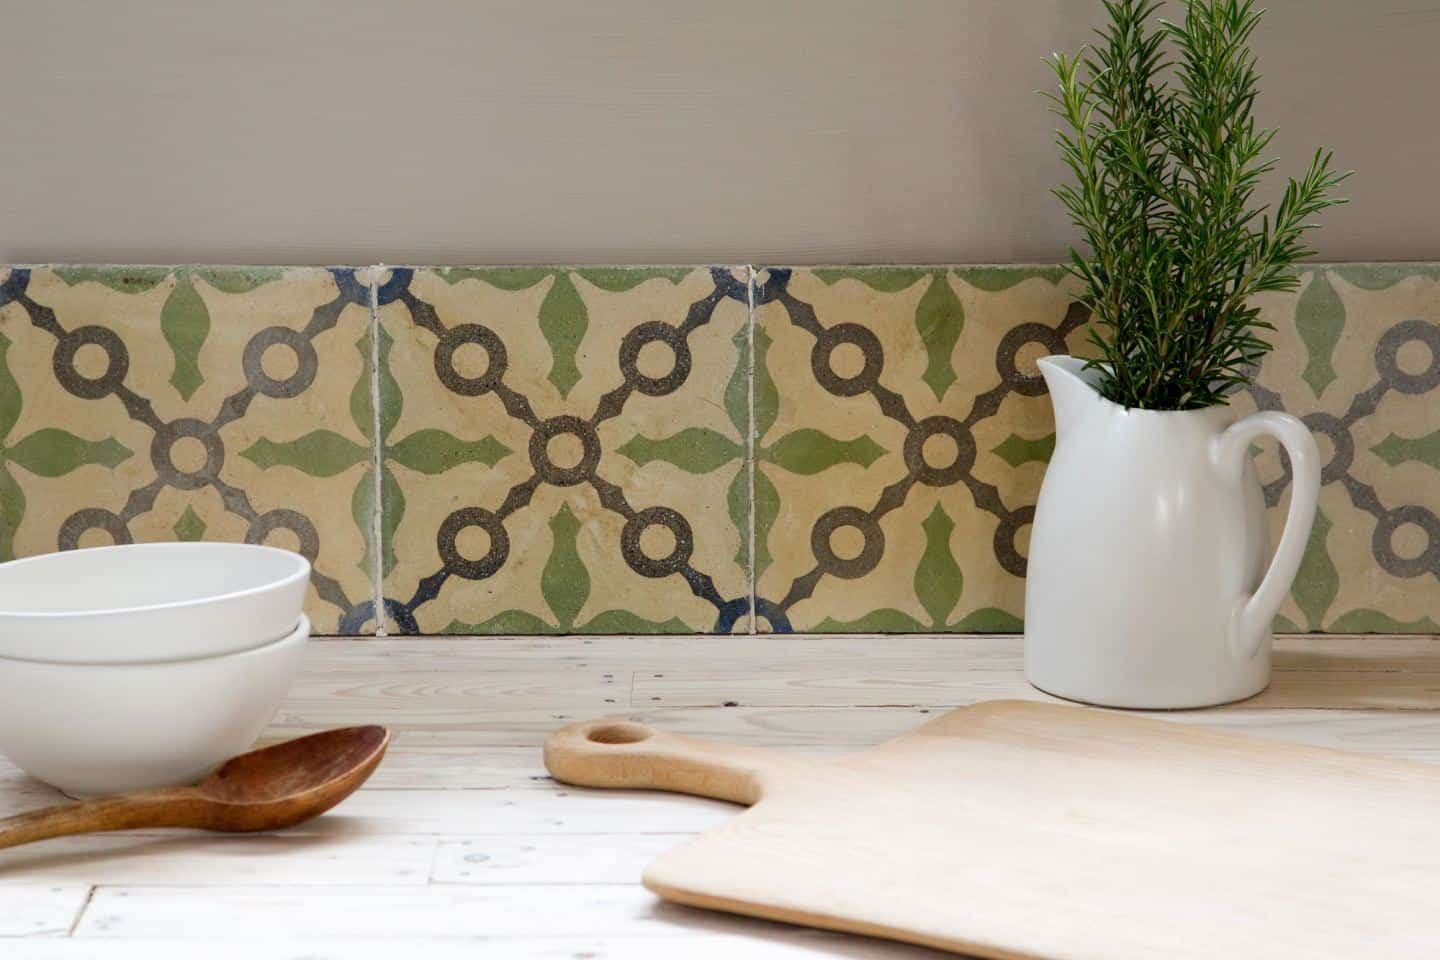 Reclaimed or antique tiles used as a kitchen splashback -Maitland & Poate